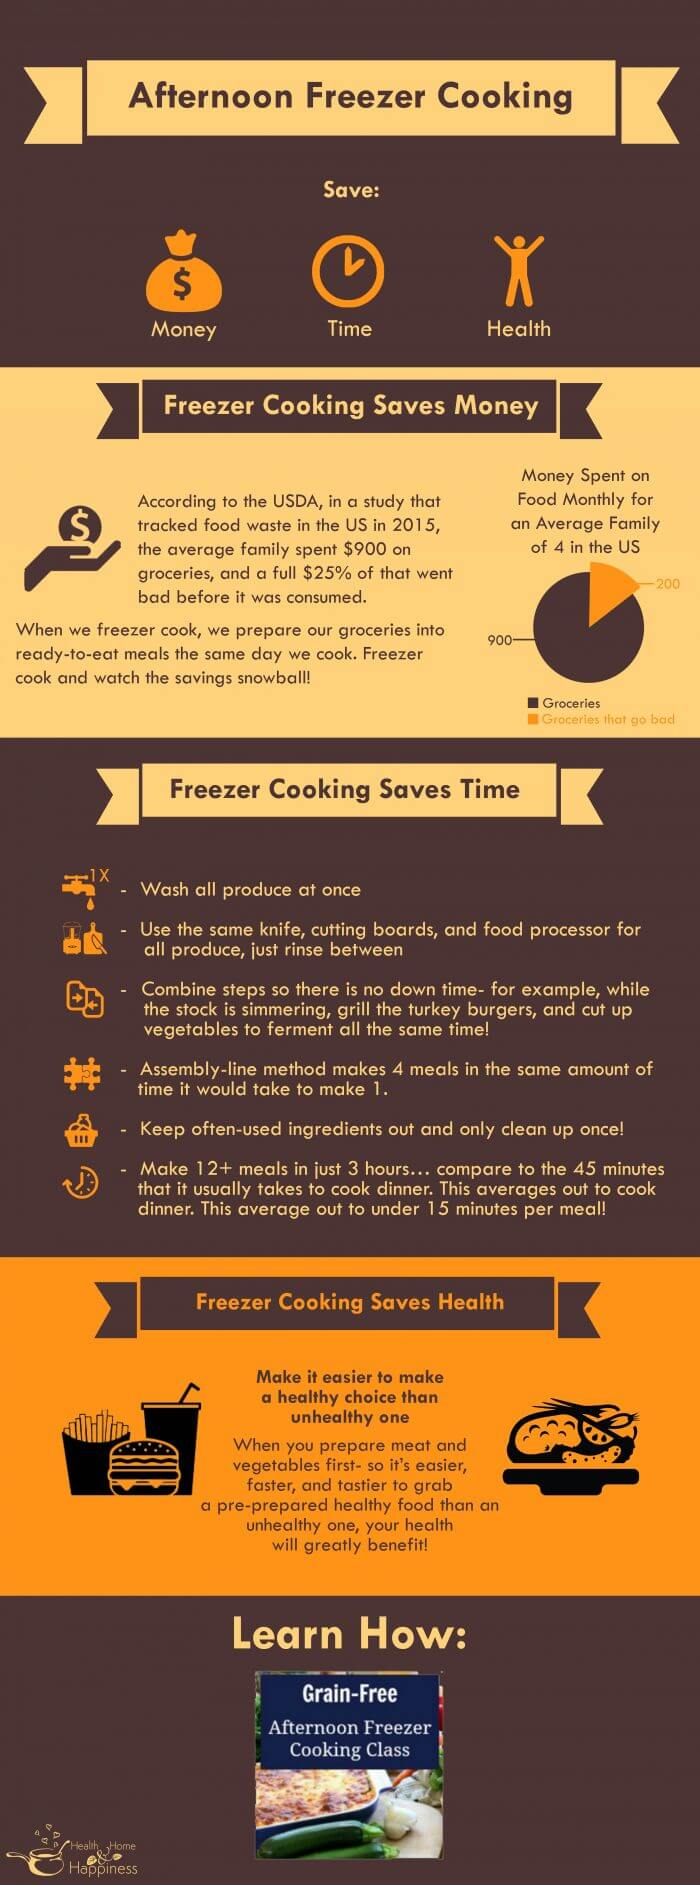 afternoon-freezer-cooking-benefits